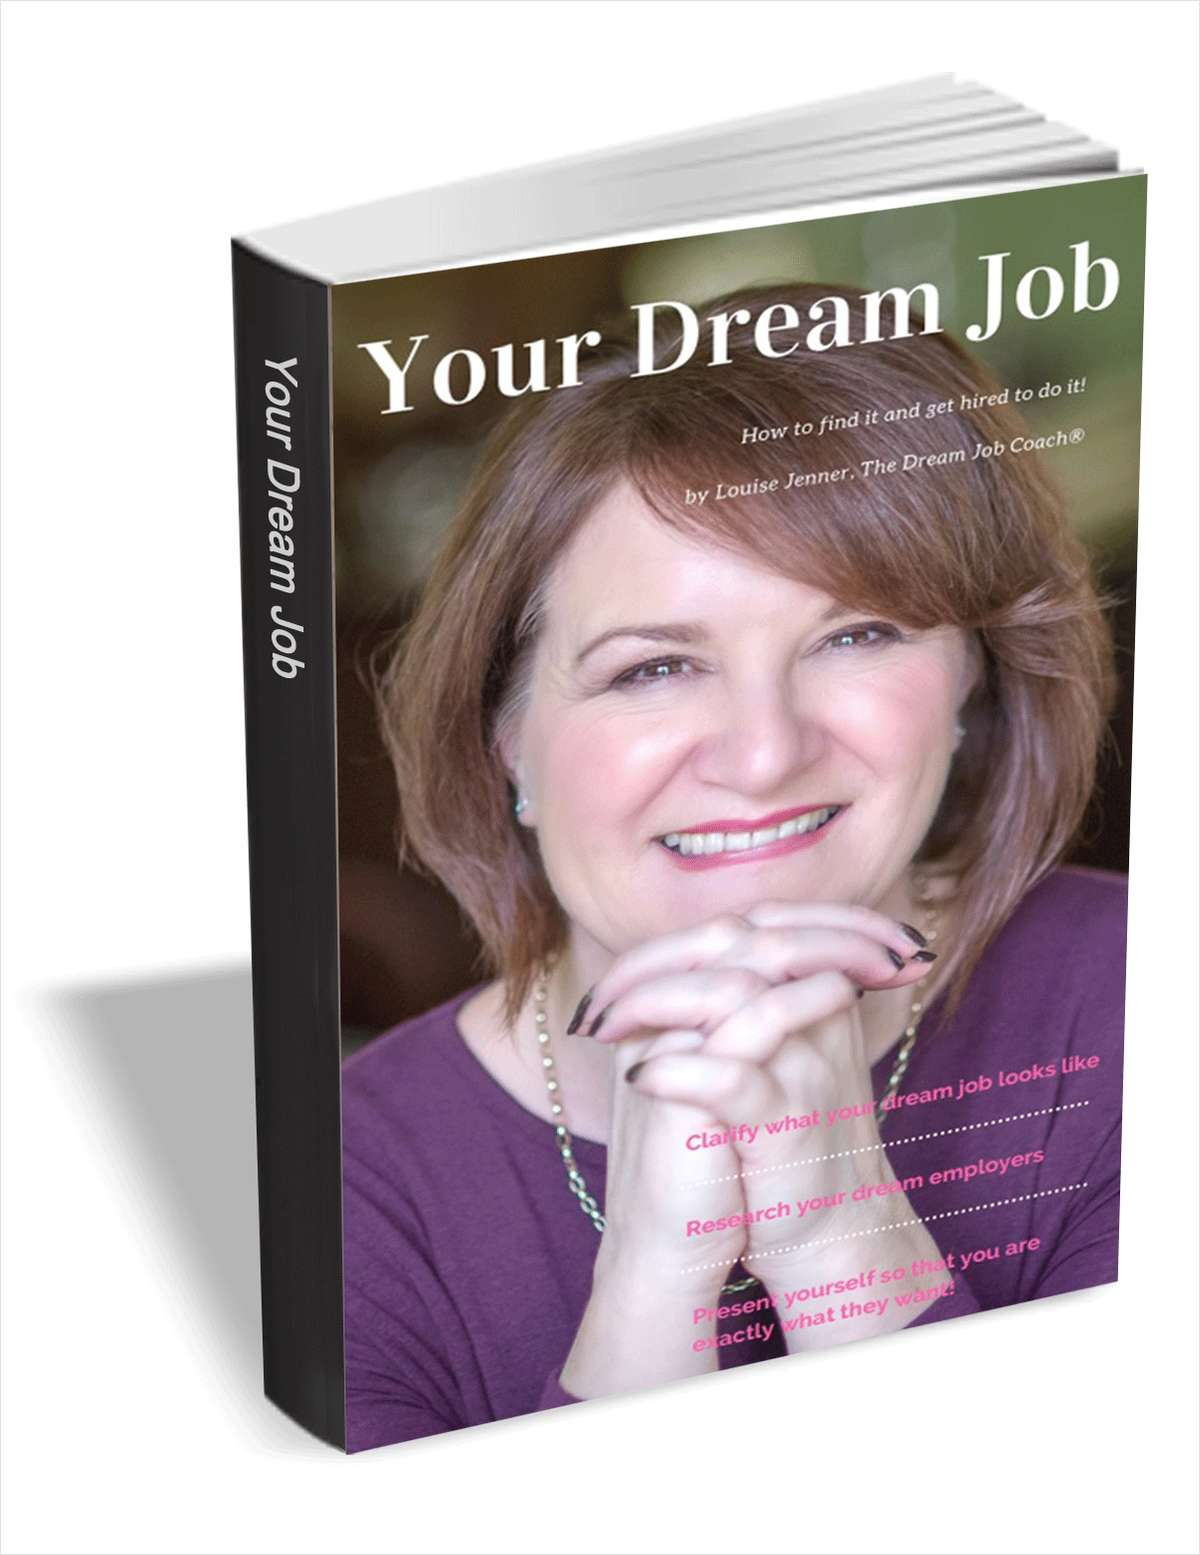 Your Dream Job - How to Find it and Get Hired to do it